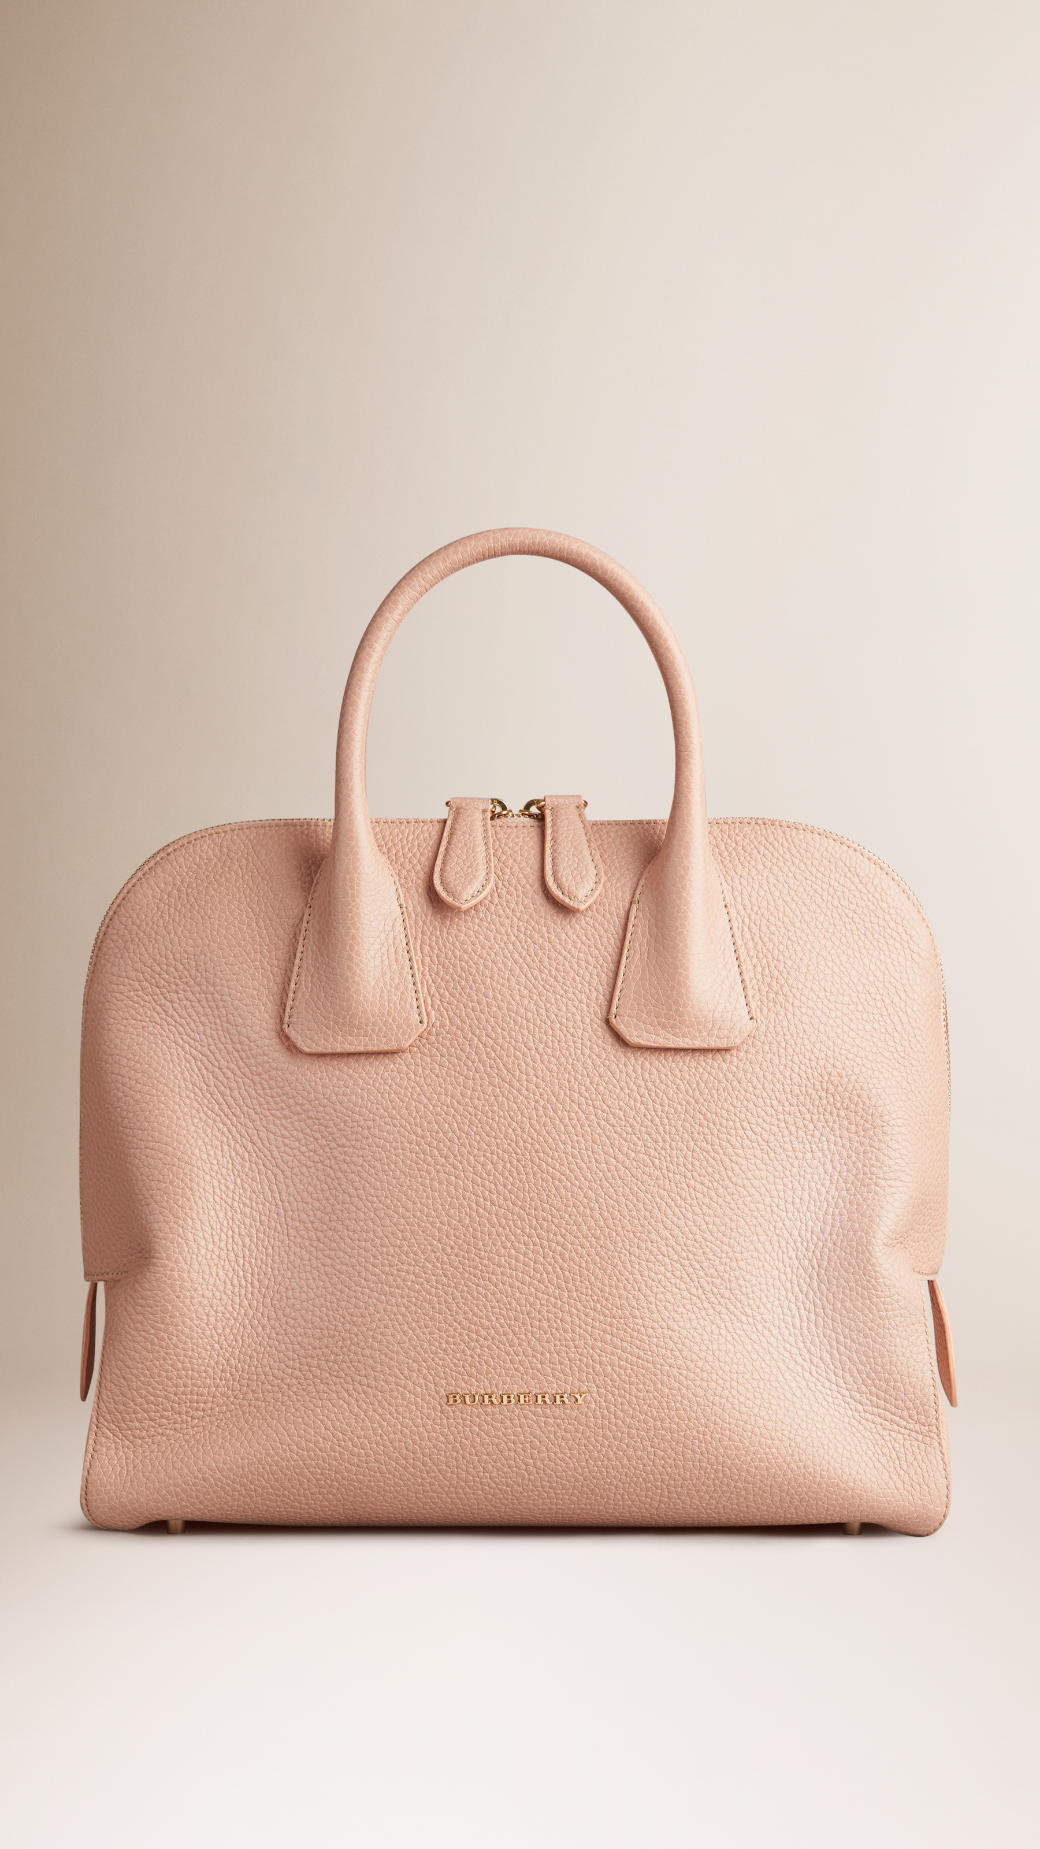 Lyst - Burberry Medium Grainy Leather Bowling Bag in Pink 1a32999fddb6a